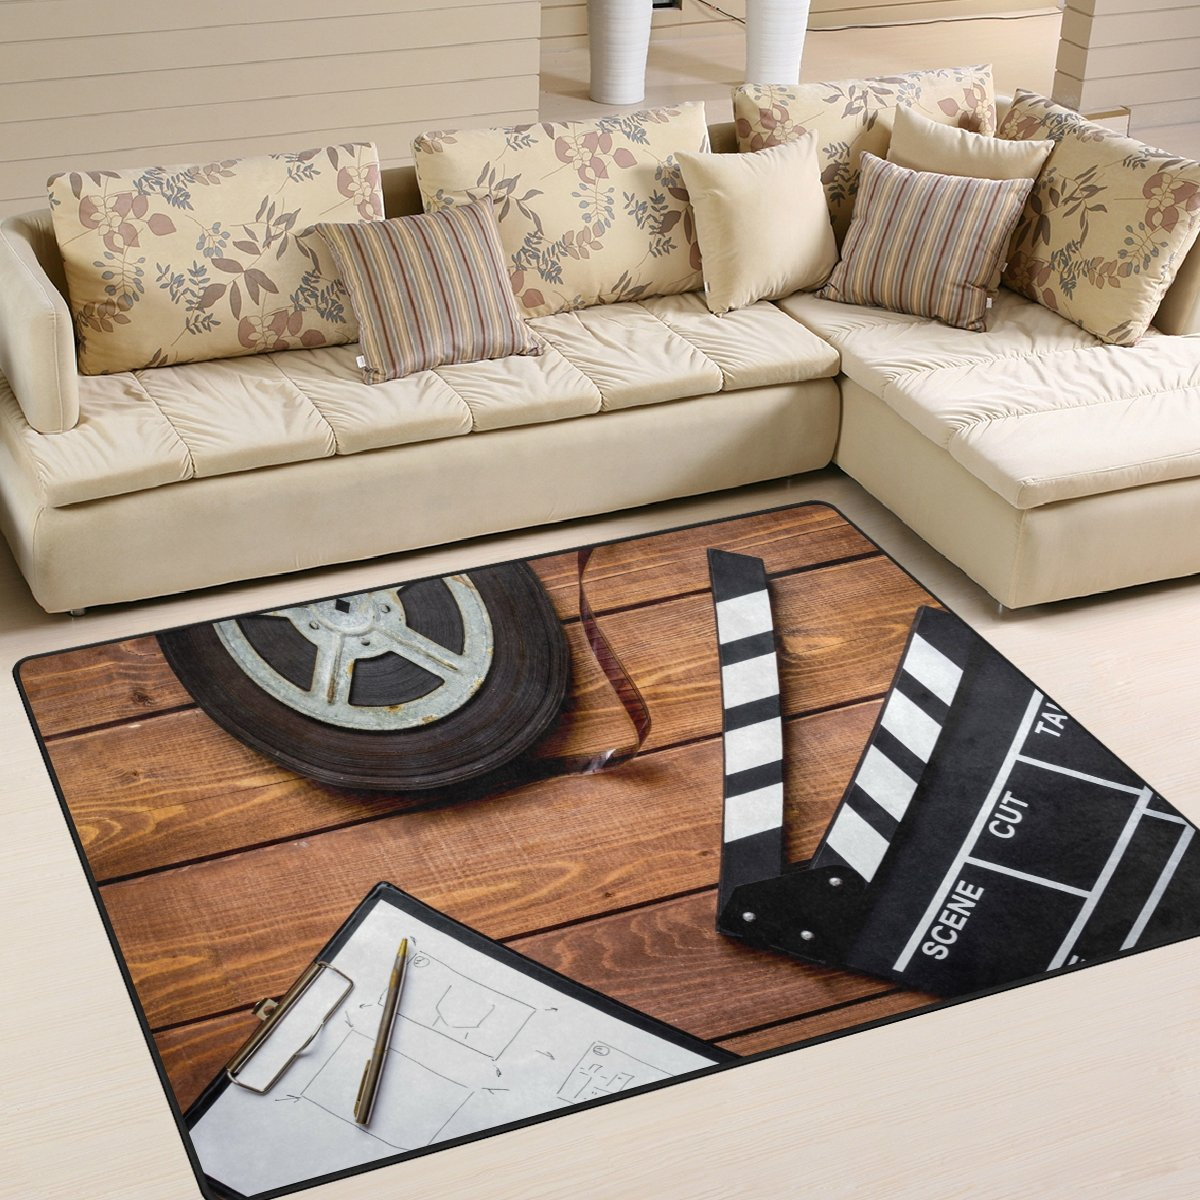 ALAZA Vintage Movie Clapboard Tape Area Rug Rugs for Living Room Bedroom 7' x 5'